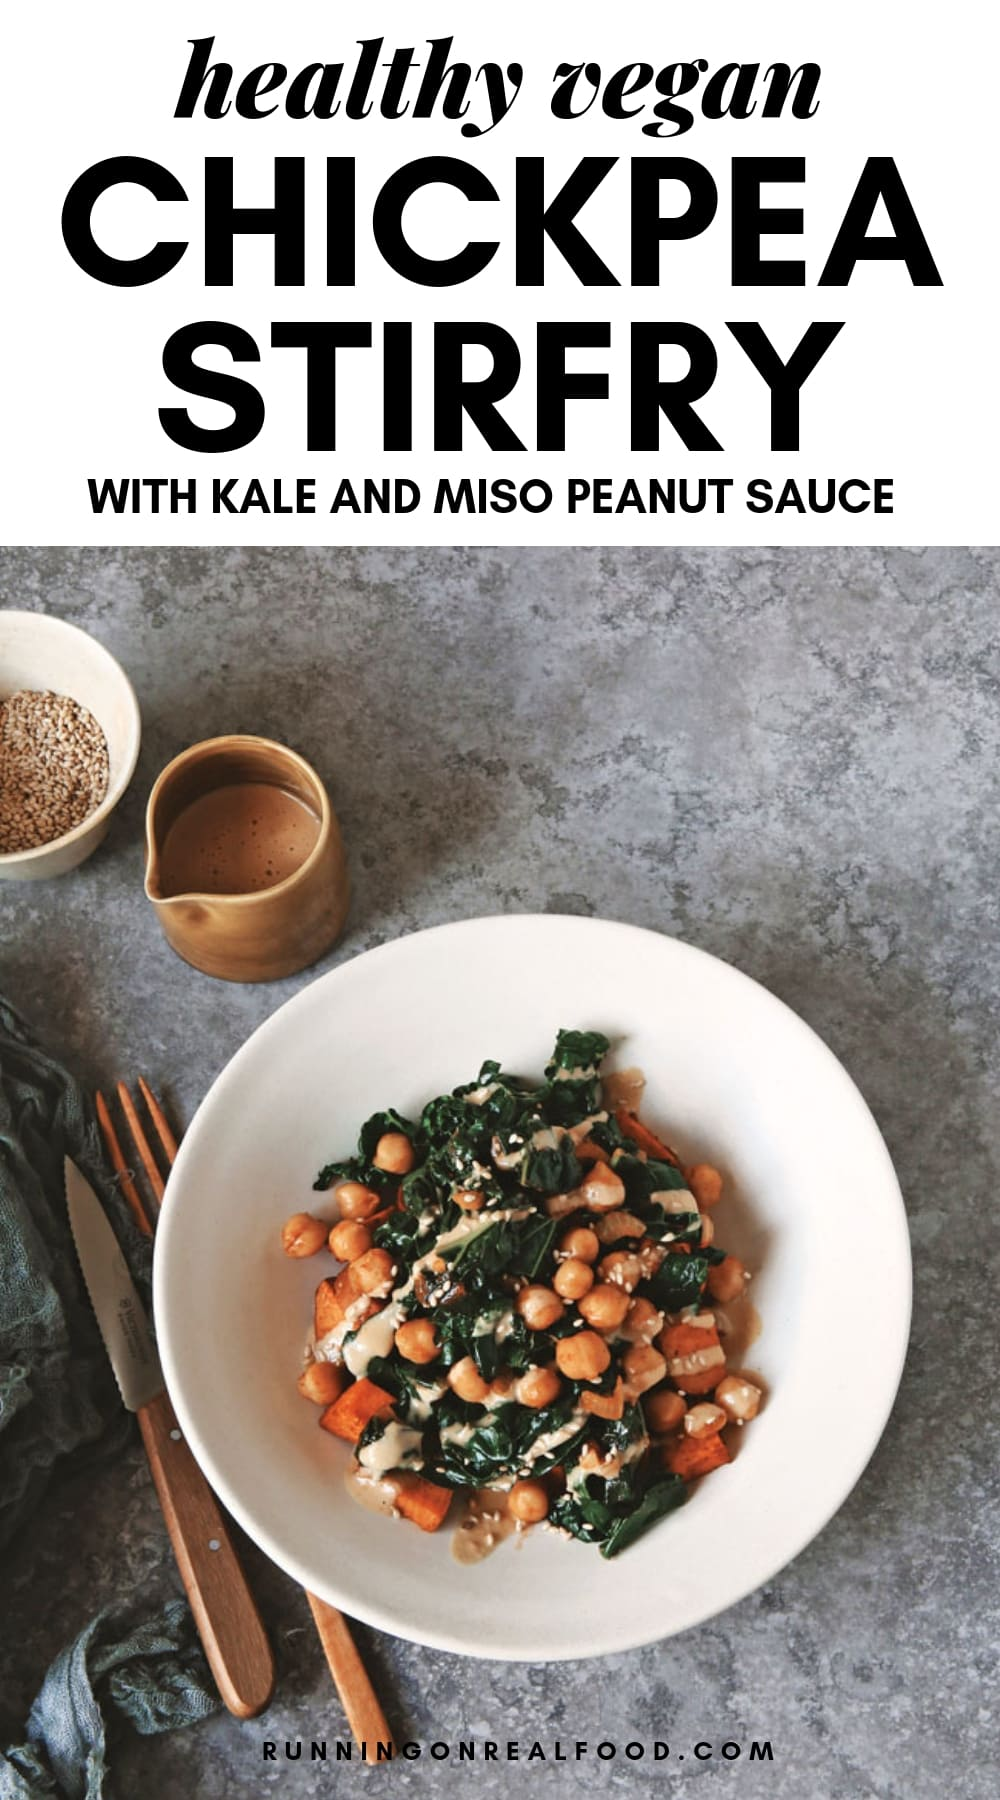 So quick and easy, this flavor-packed, smoky kale and chickpea stir-fry with miso peanut sauce is great served alone. It's also a perfect match with roasted sweet potatoes to make for a colorful complete meal. While definitely good for you, this dish is quite a treat too. Vegan, gluten-free.